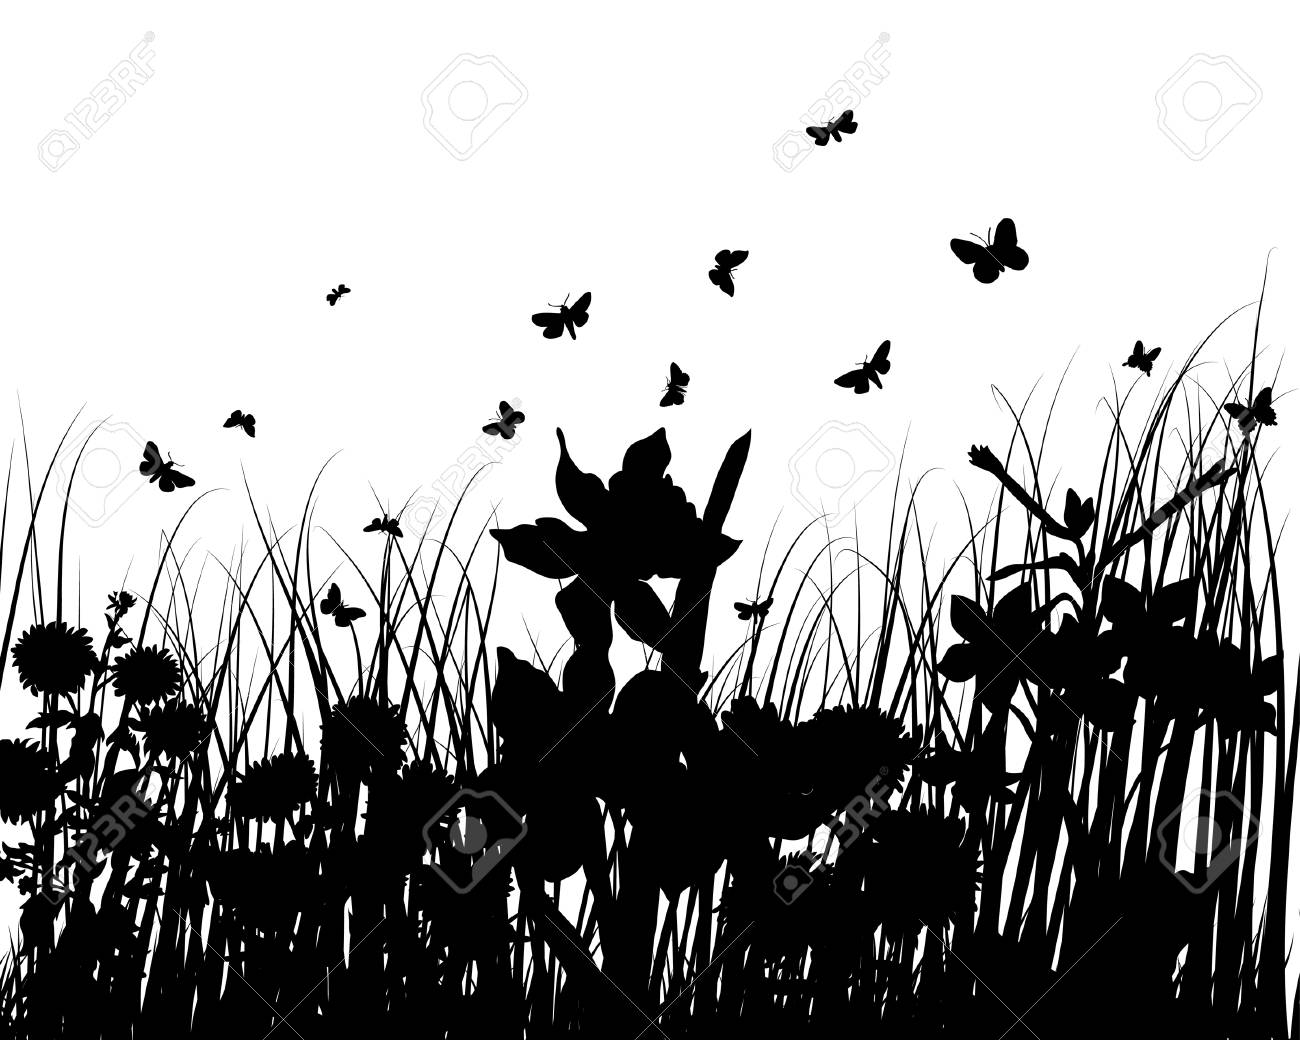 Vector grass silhouettes backgrounds with butterflies Stock Vector - 4272917